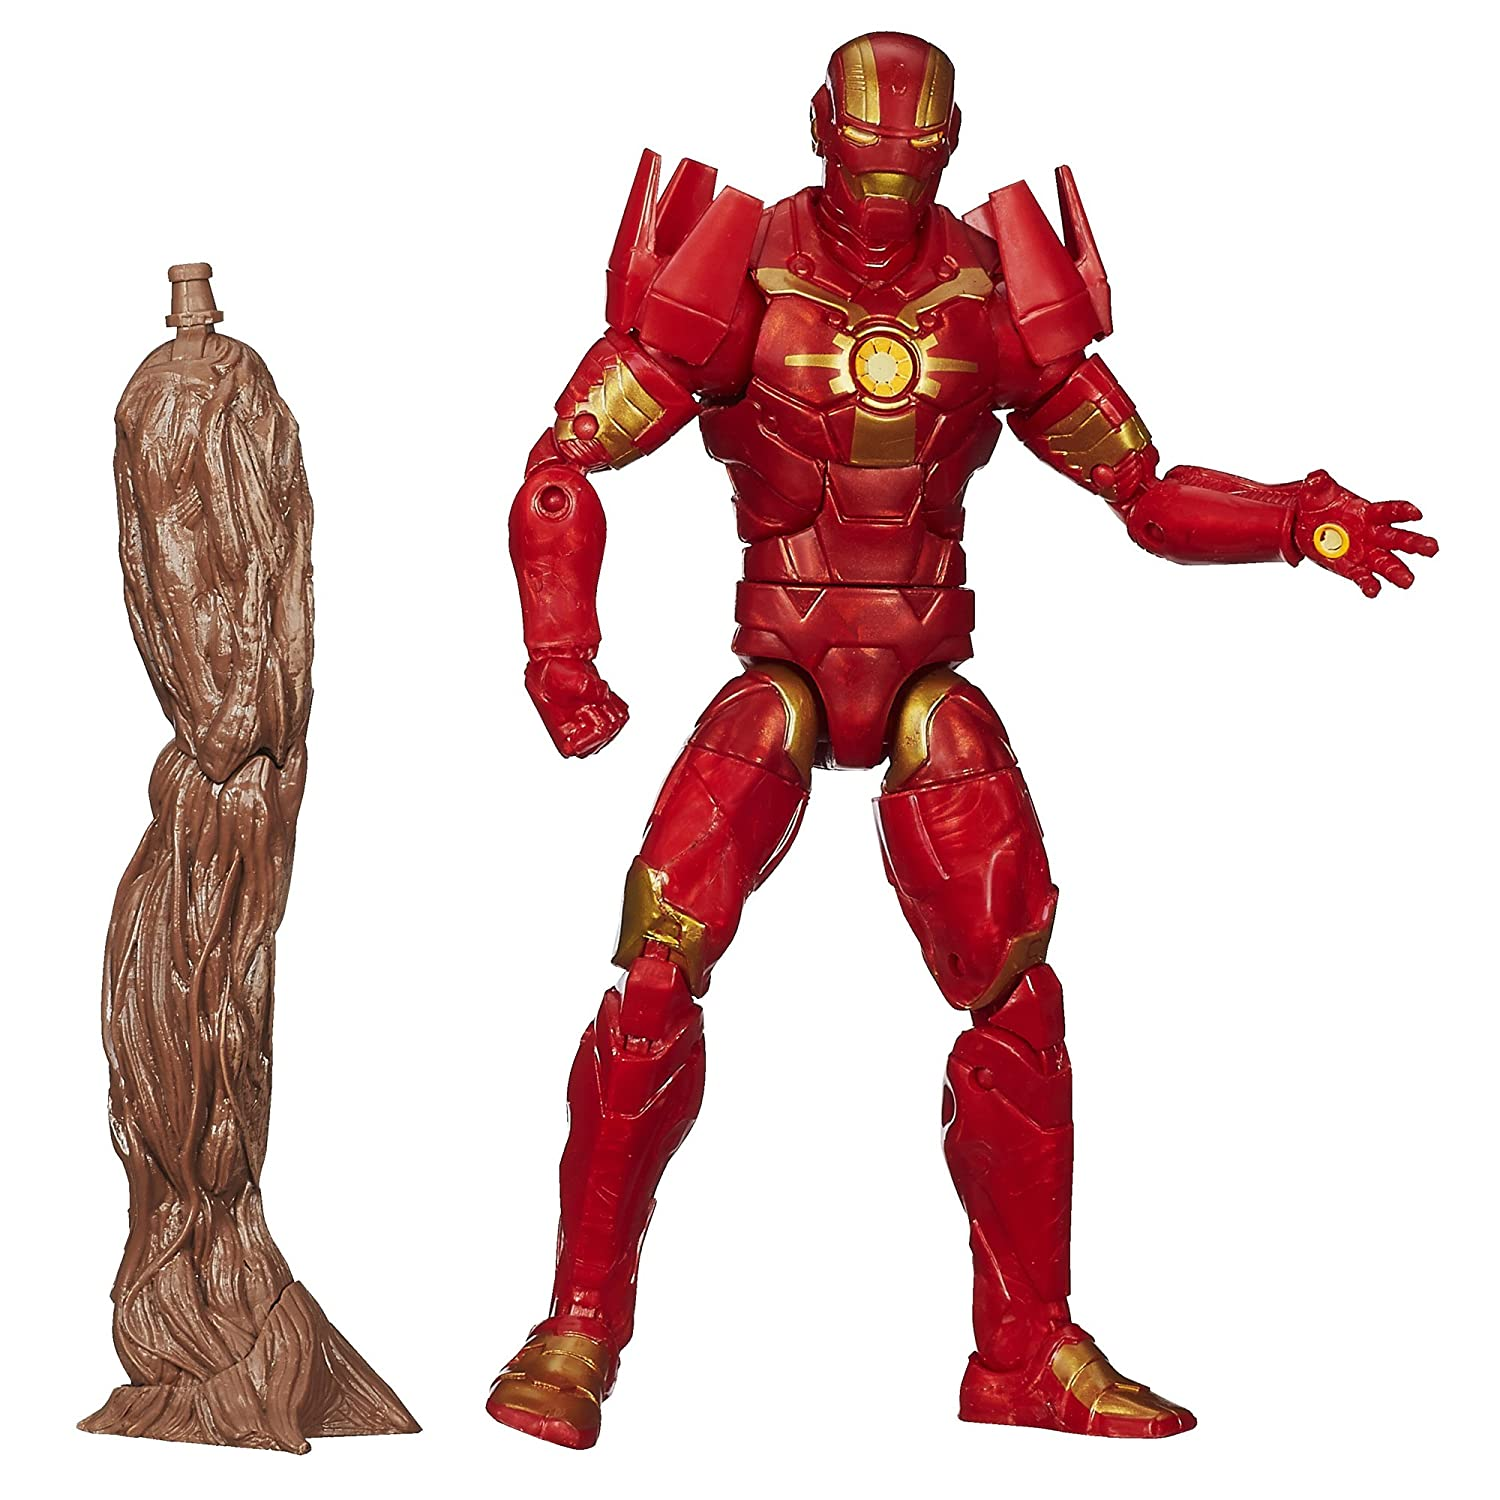 Marvel Guardians of The Galaxy Iron Man Figure, 6Inch